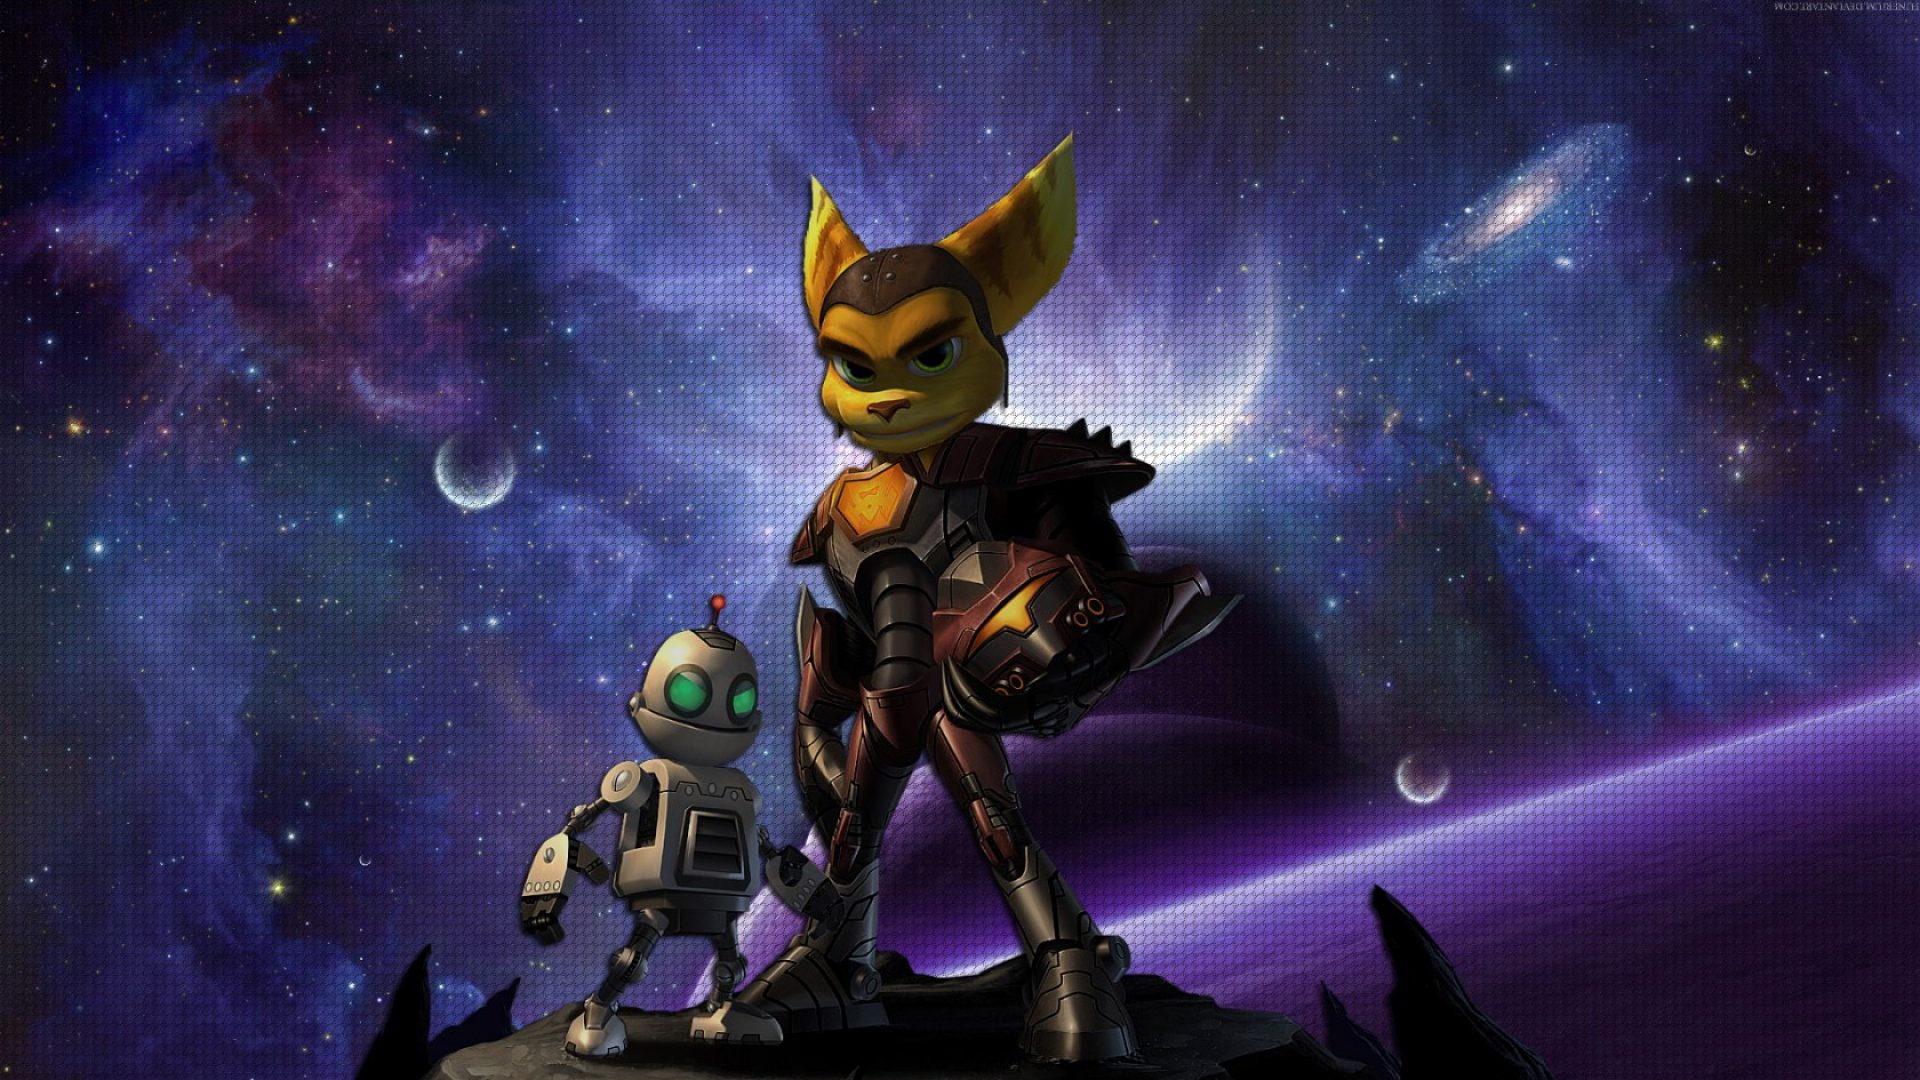 Free Download Ratchet And Clank Wallpaper Hd 1920x1080 For Your